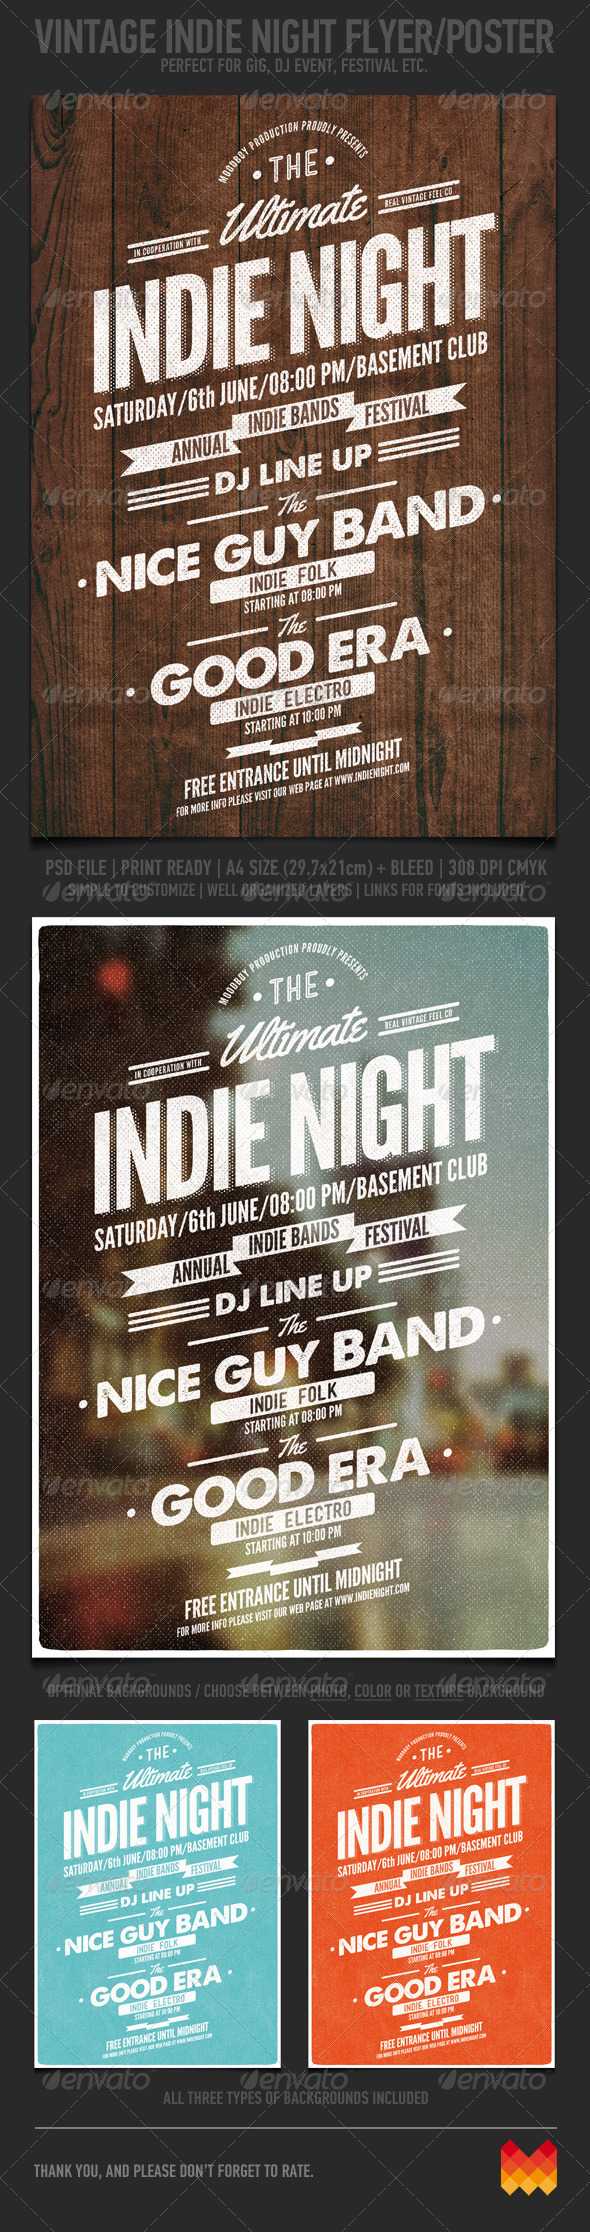 GraphicRiver Vintage Indie Night Flyer Poster 7402686